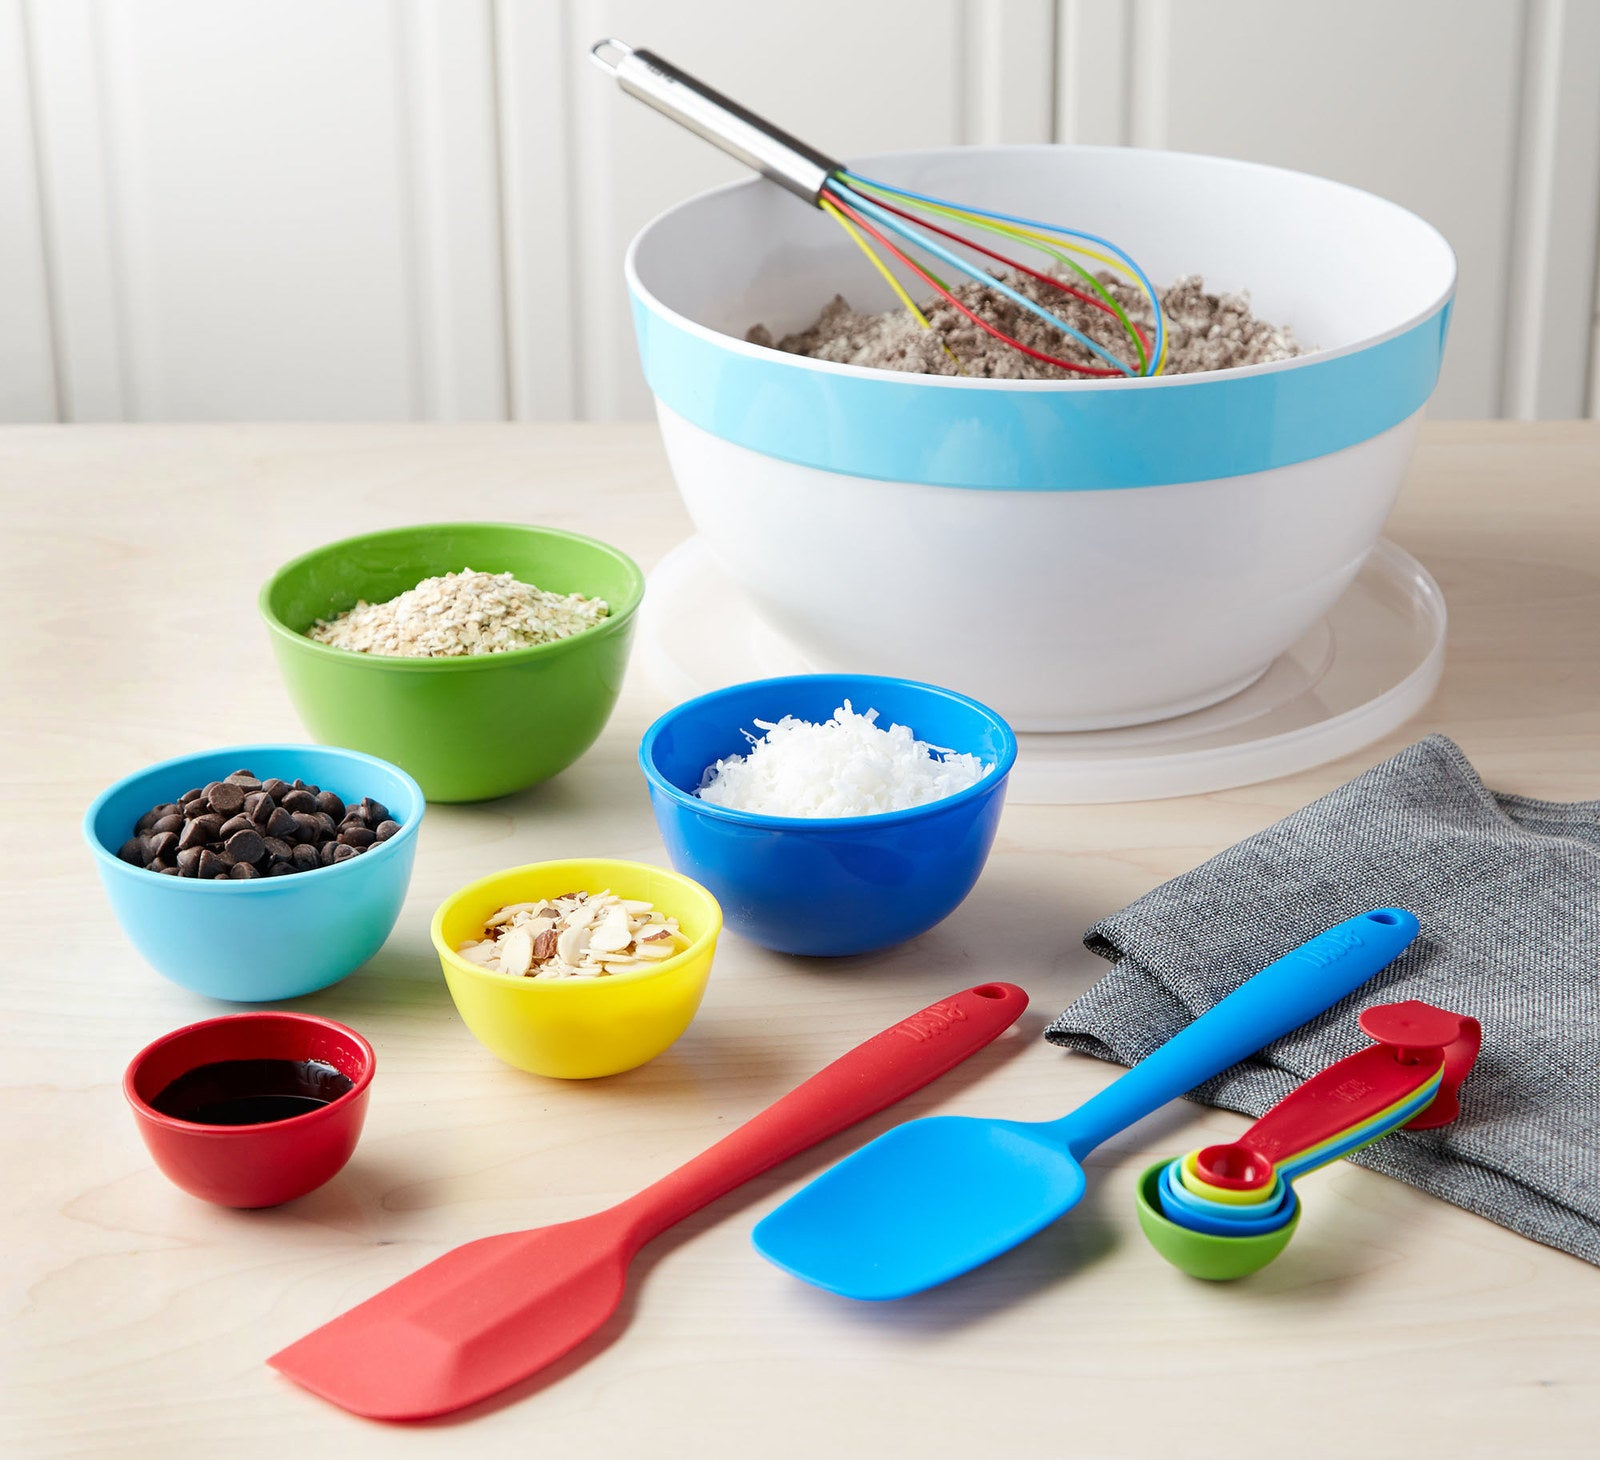 Set includes 7 qt. mixing bowl with lid, silicone spatula, silicone whisk, silicone spoonula, a five-piece measuring spoon set, and a five-piece measuring bowl set. The whisk, spatula, and spoonula all have silicone heads that are safe to use on delicate and non-stick surfaces. The measuring bowls and spoons are color coded, and the melamine bowl comes with a lid for easy storing.Get it from BuzzFeed's Tasty line, exclusively at Walmart for $19.96.